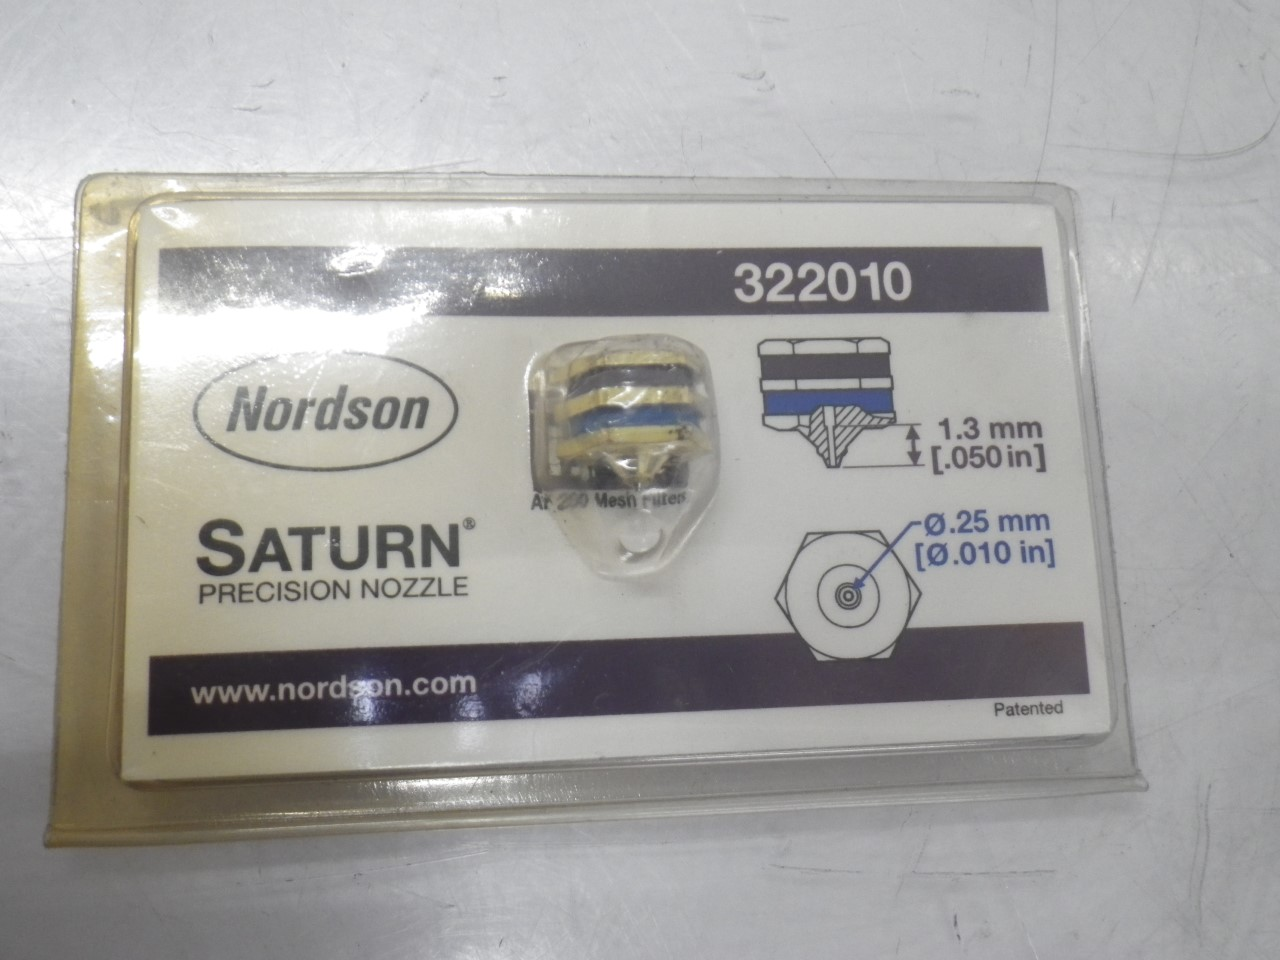 IMGP8502322010 Nordson Saturn Precision Nozzle .25mm Outlet (New) (2)